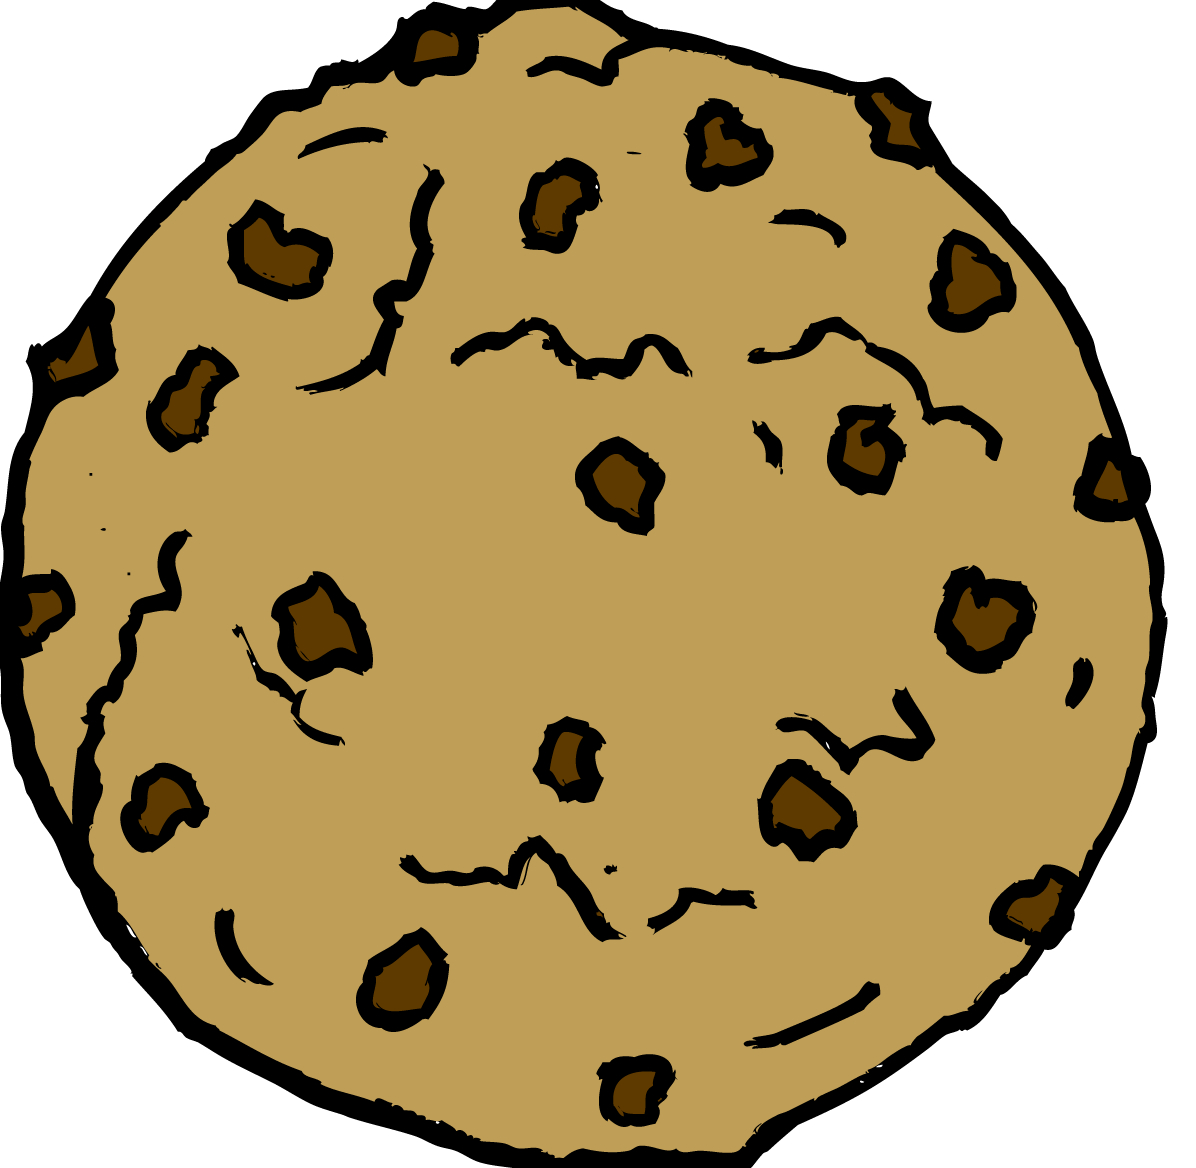 Chocolate chip cookies drawing. Cookie clipart